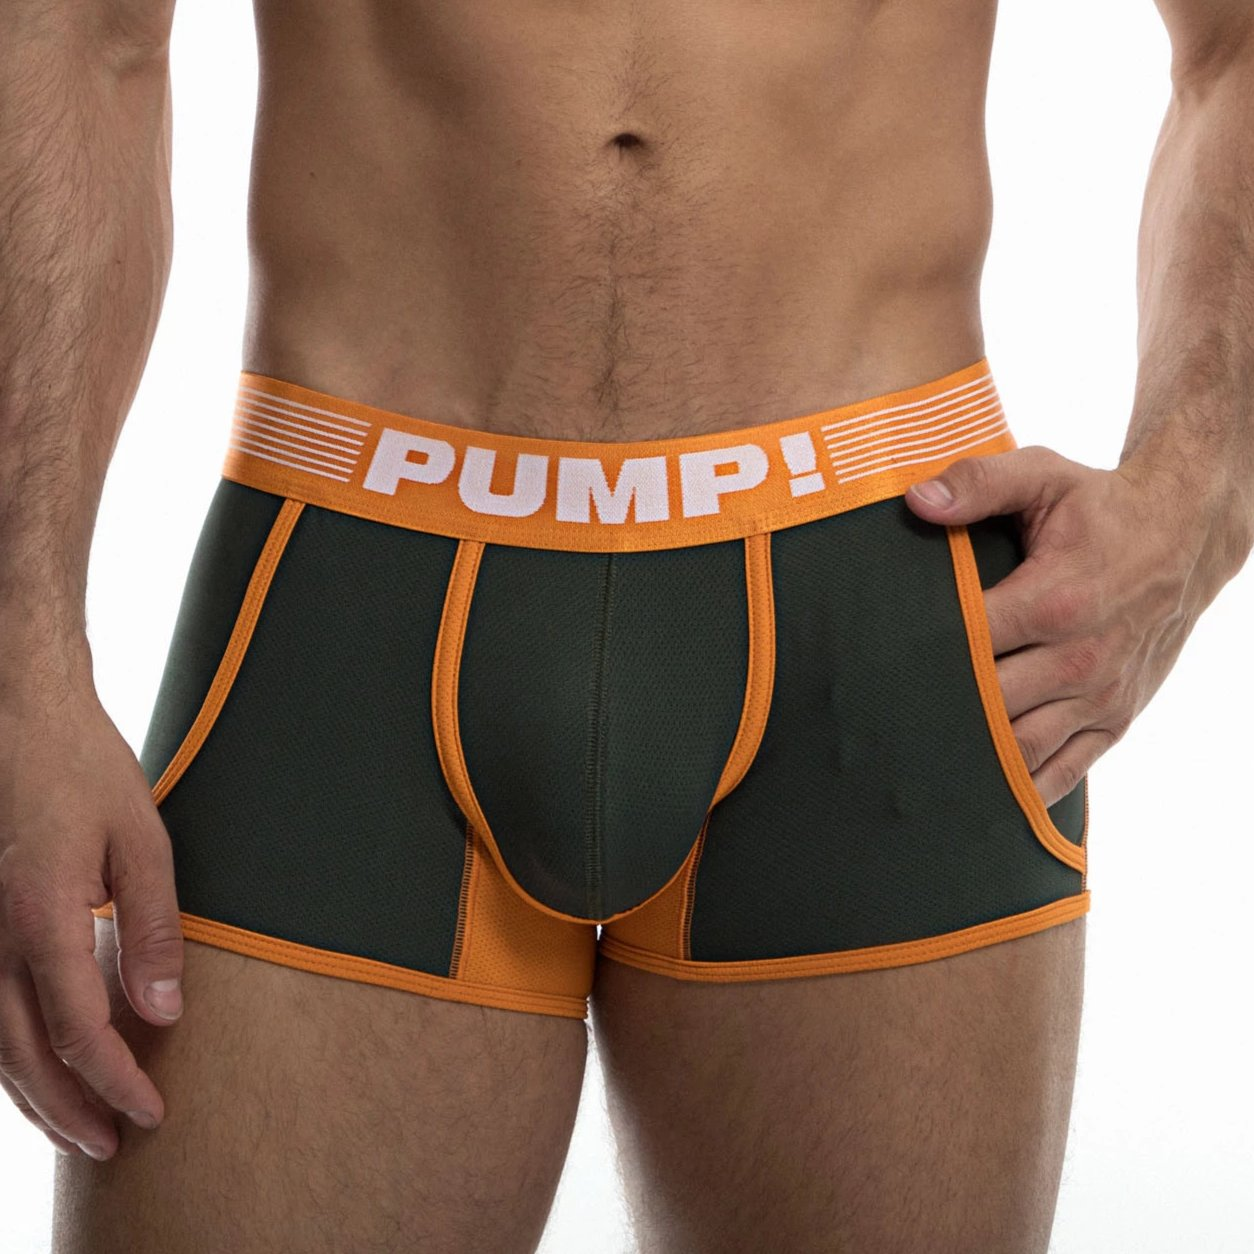 Squad Jogger Front by PUMP! Underwear at Trenderwear.com